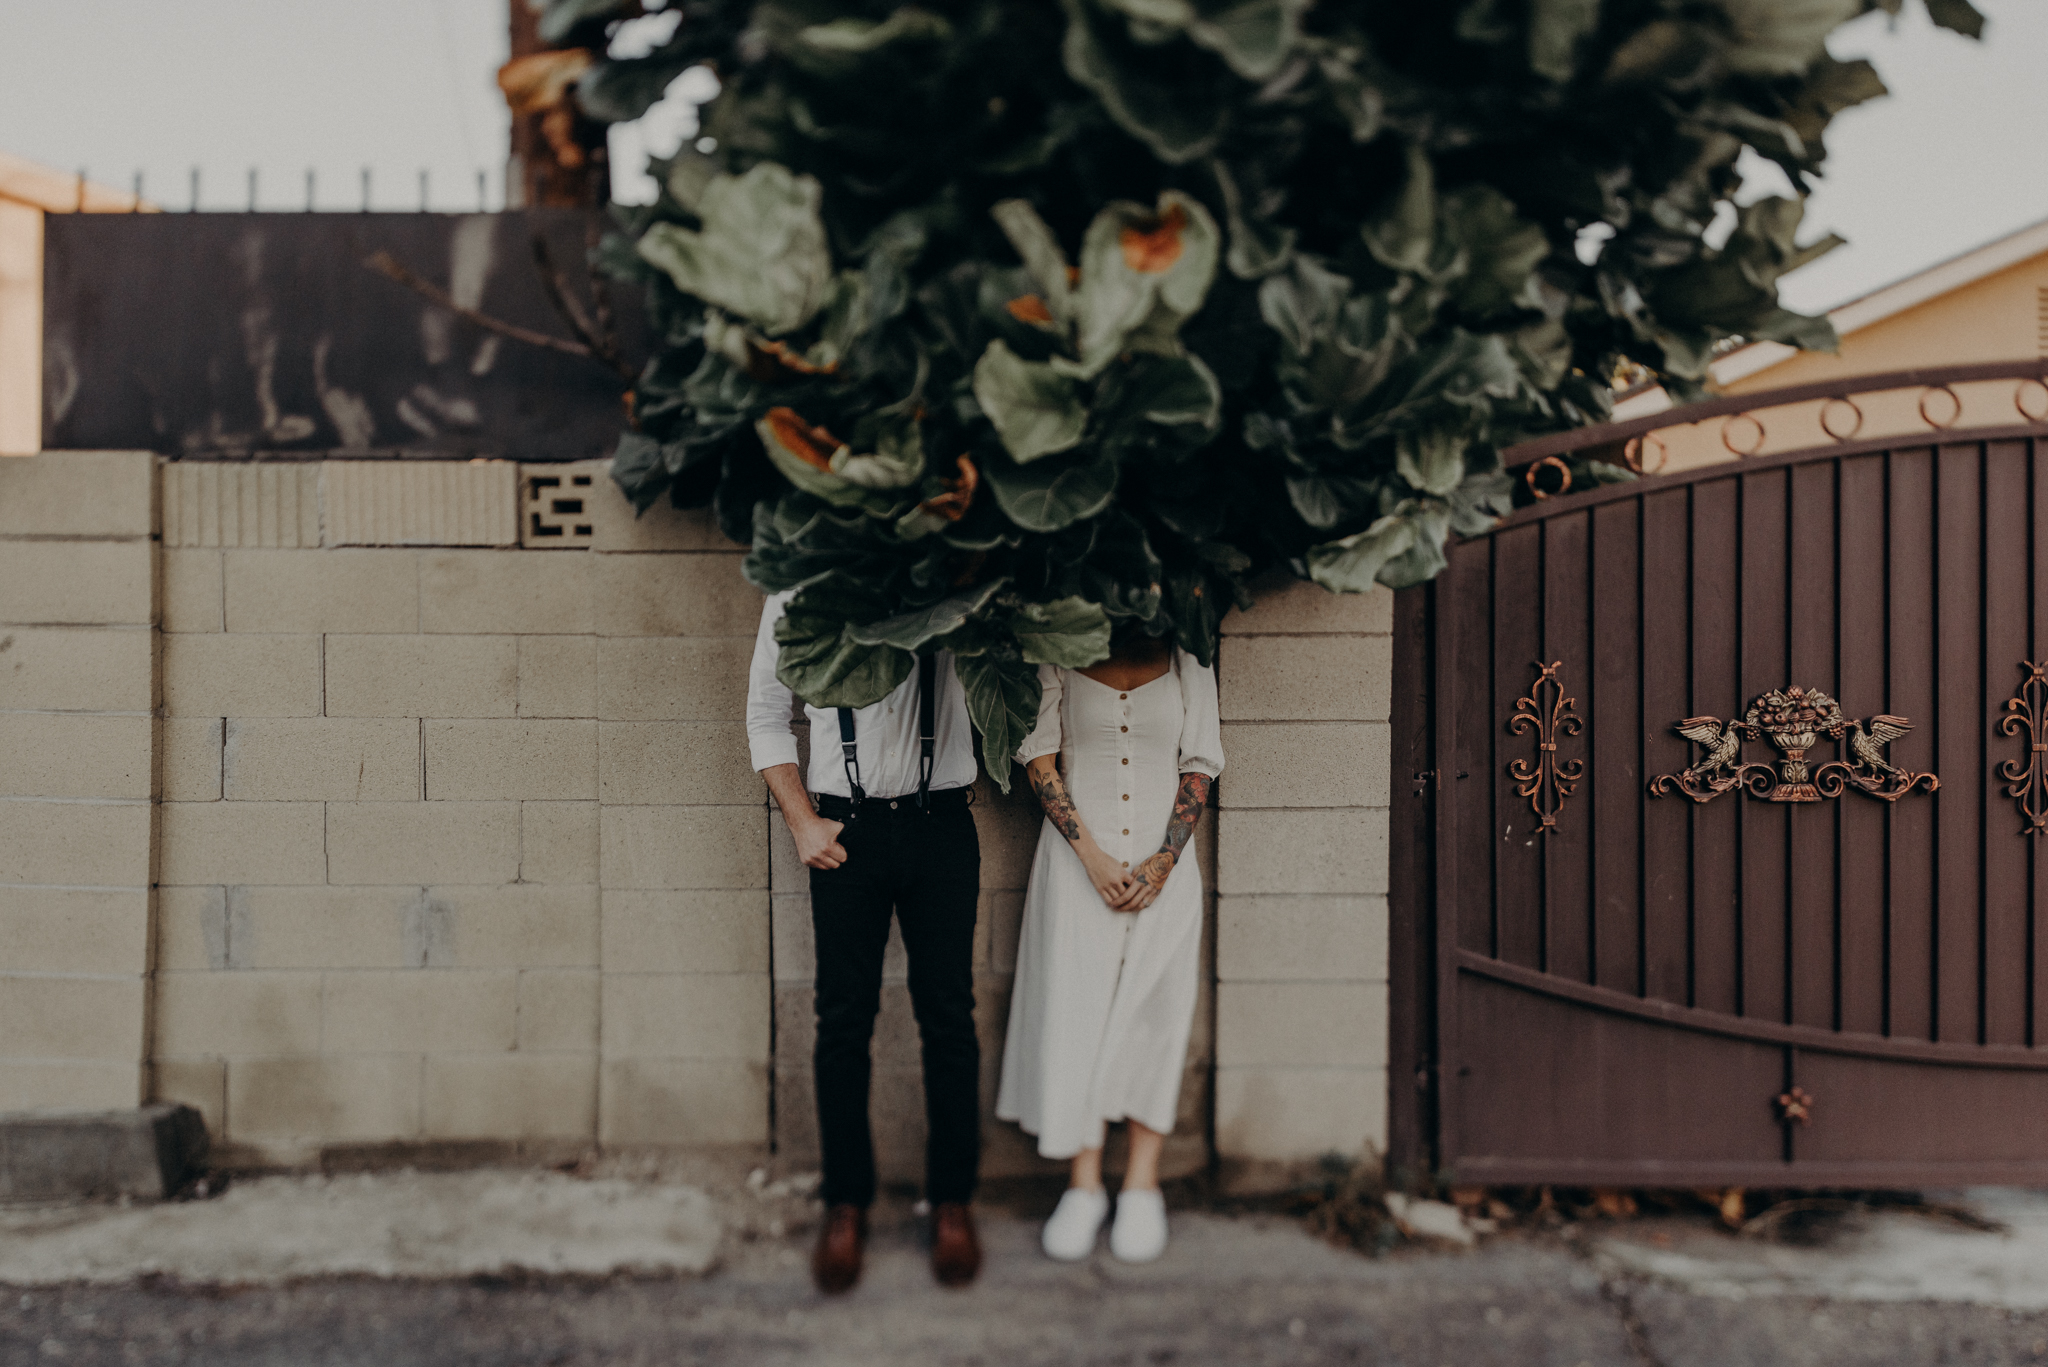 Wedding Photographer in LA - Los Angeles Wedding Photos - Tattoo Shop Engagement Session - IsaiahAndTaylor.com-035.jpg